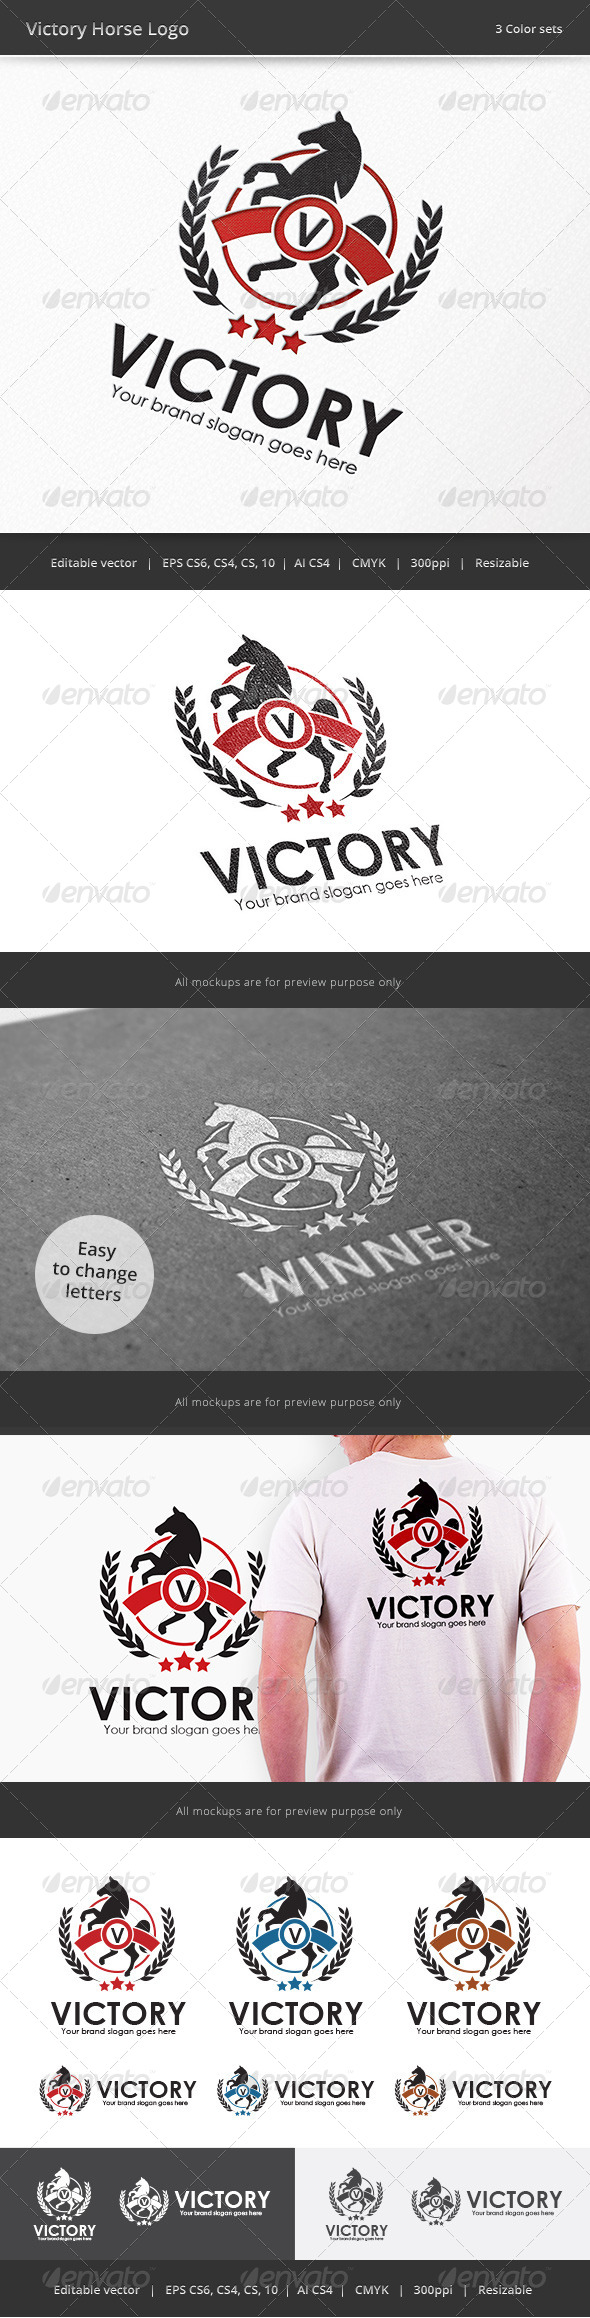 GraphicRiver Victory Horse Letter Crest Logo 7857559